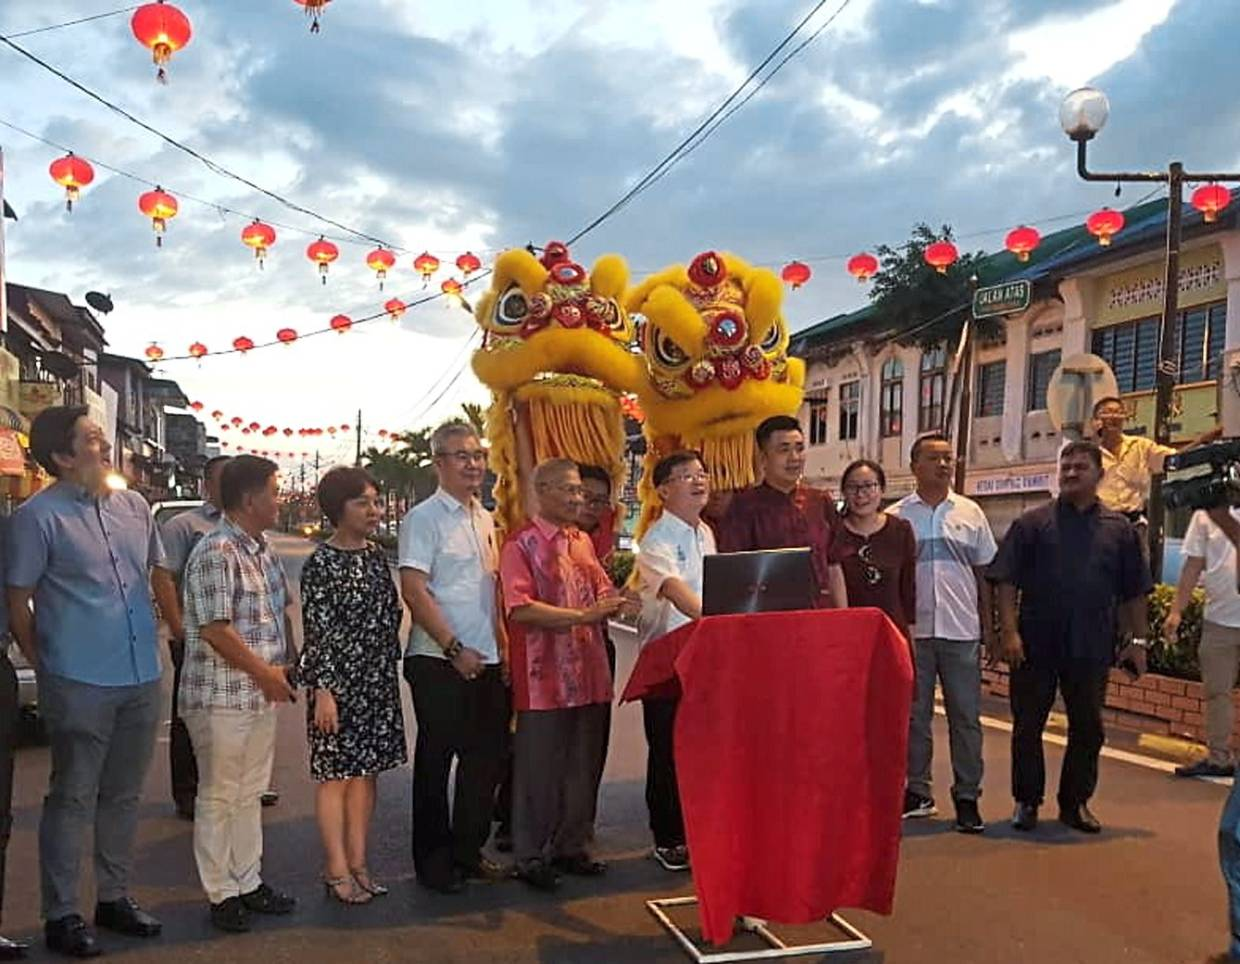 Nibong Tebal decked out for Lunar New Year